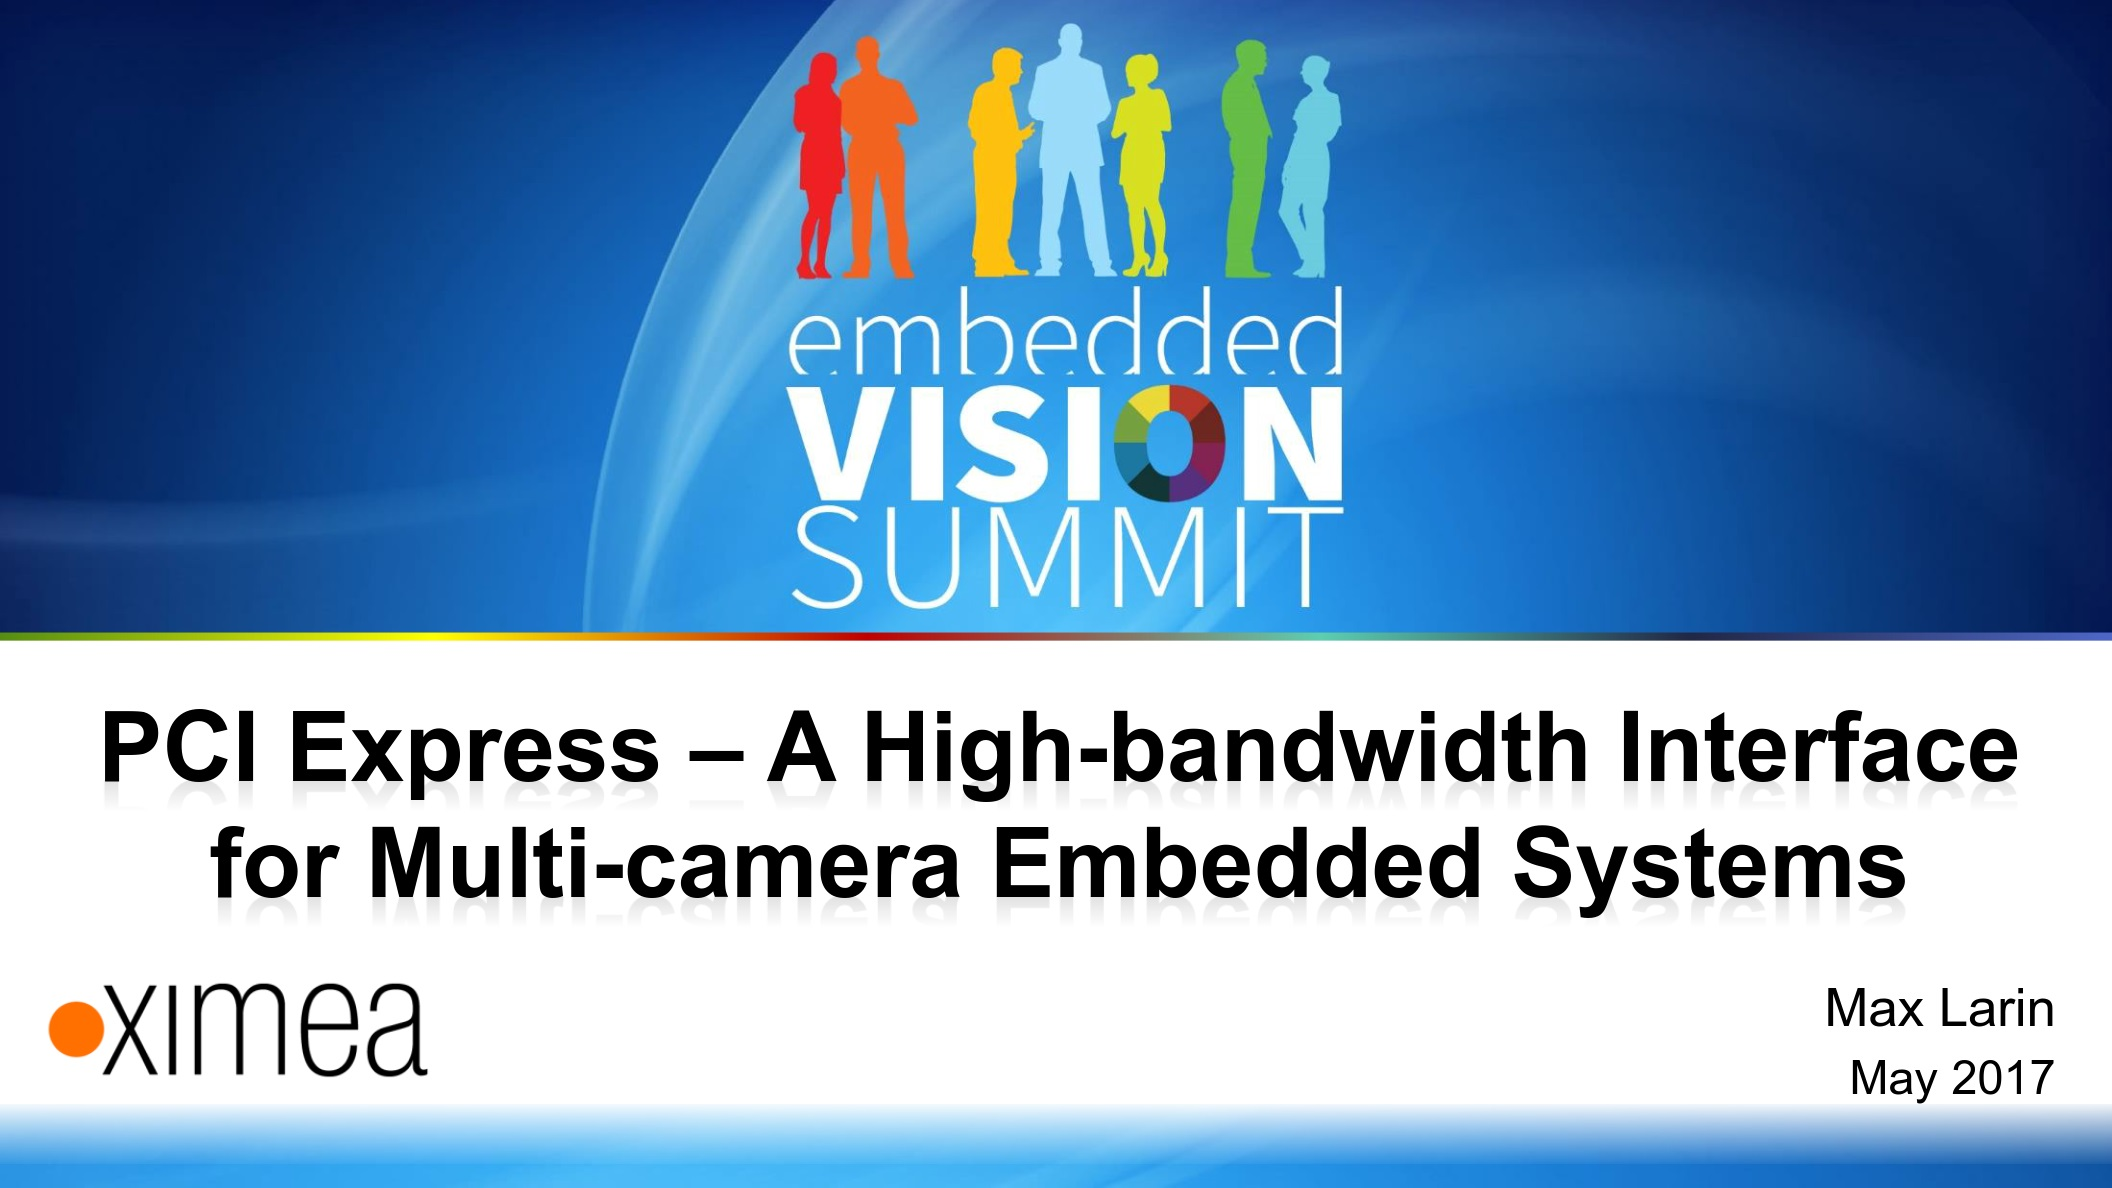 Embedded Vision Summit presentation cameras 2017 systems USB3 PCIe